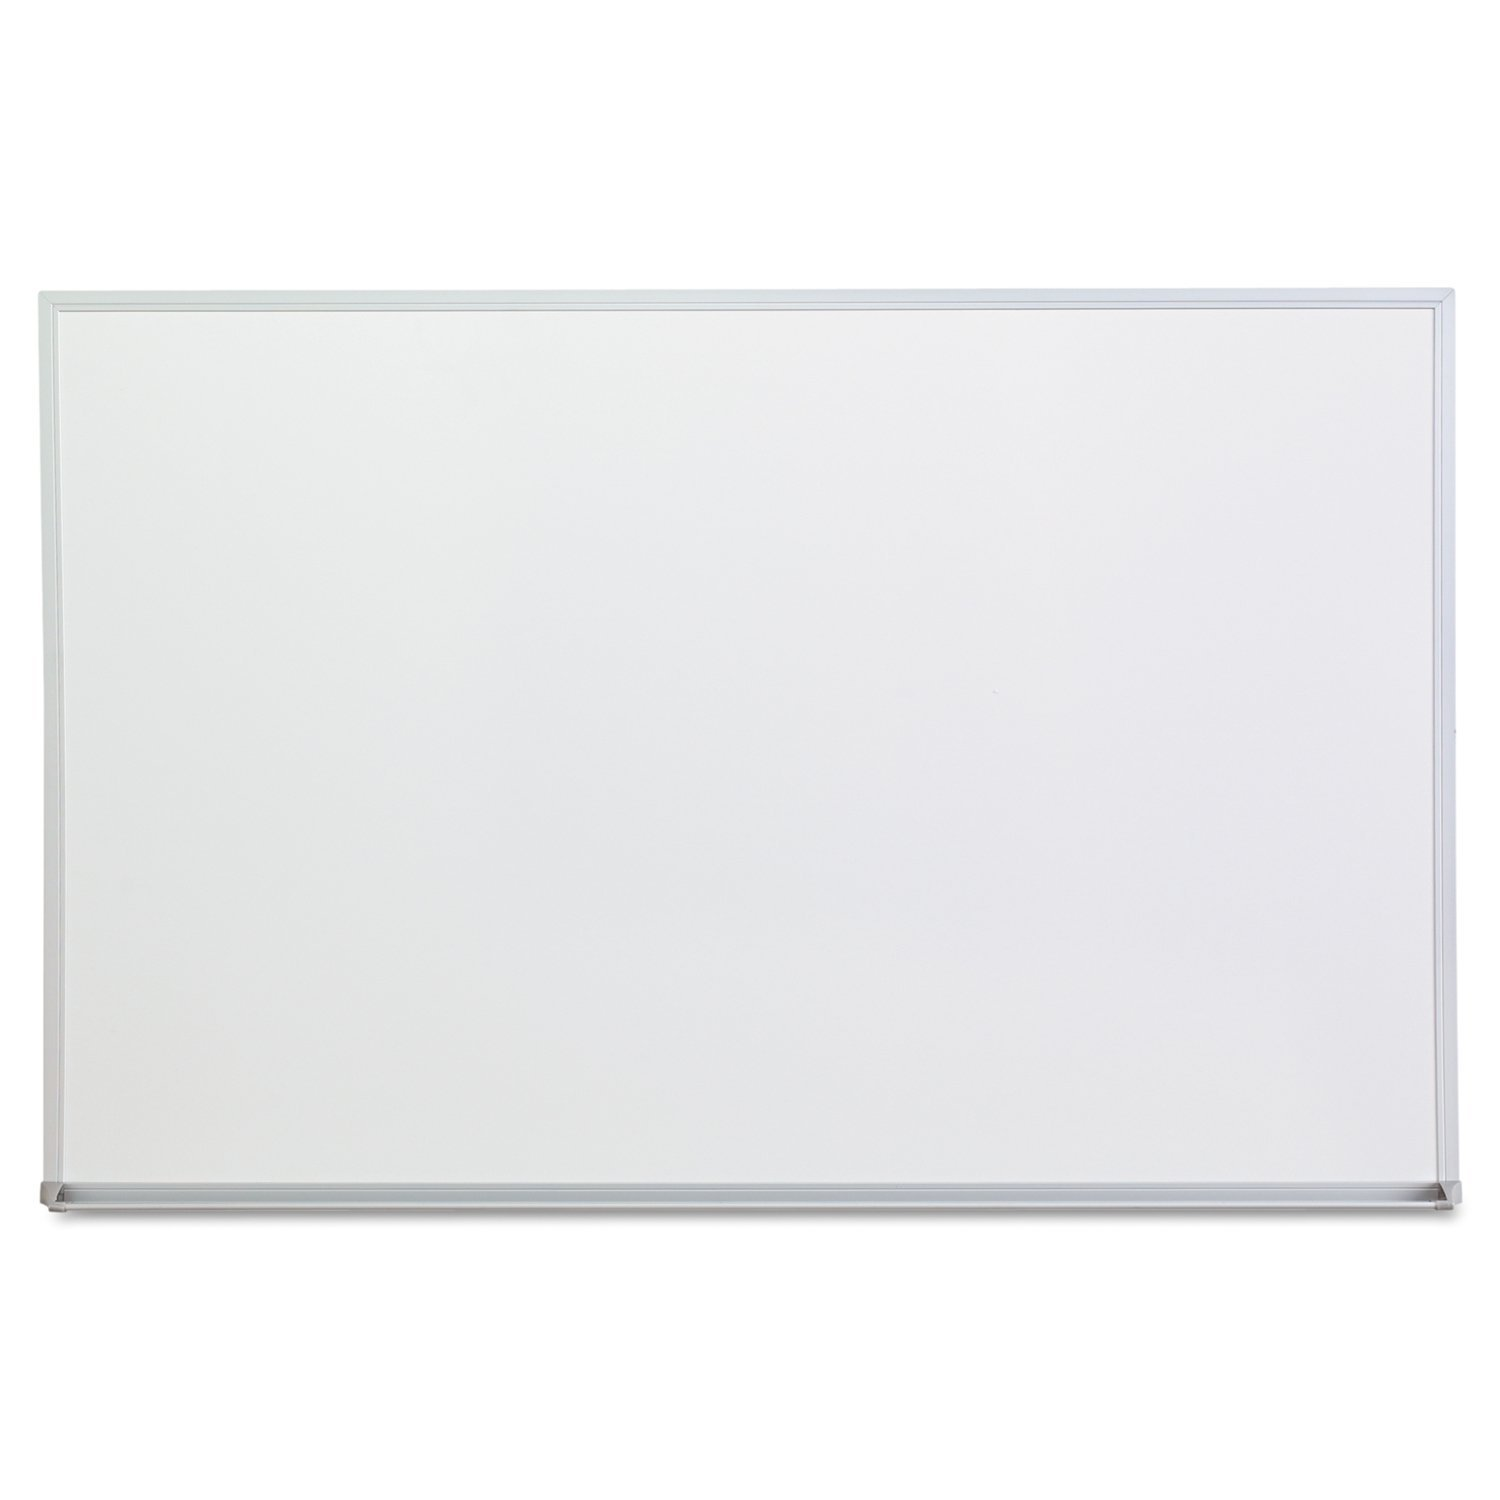 Amazon Com Universal Melamine Dry Erase Board 36 X 24 Inches Satin Finished Aluminum 43623 Office Products